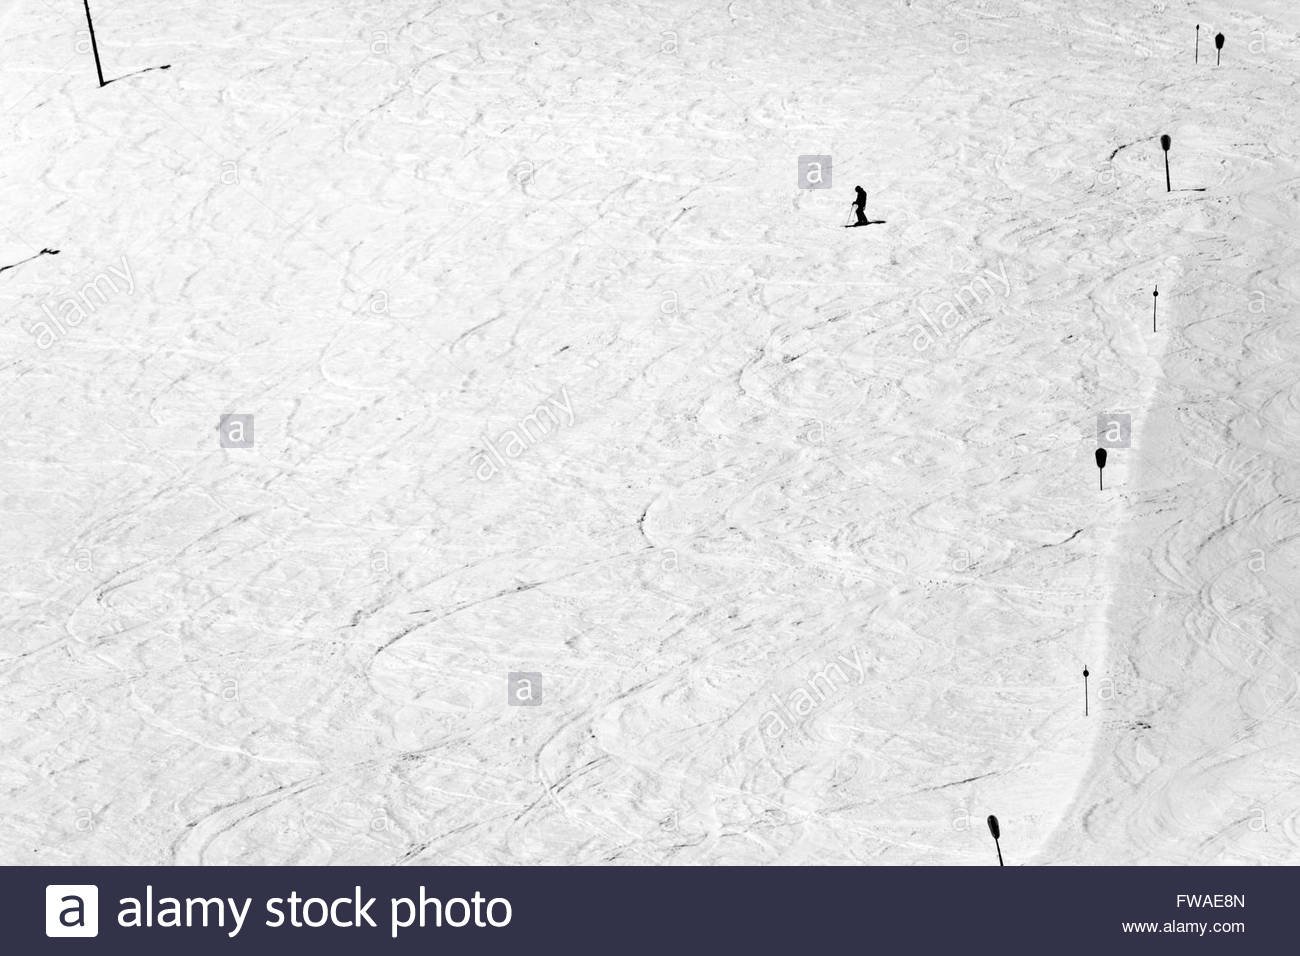 one person on a large slope skiing down hill - Stock Image